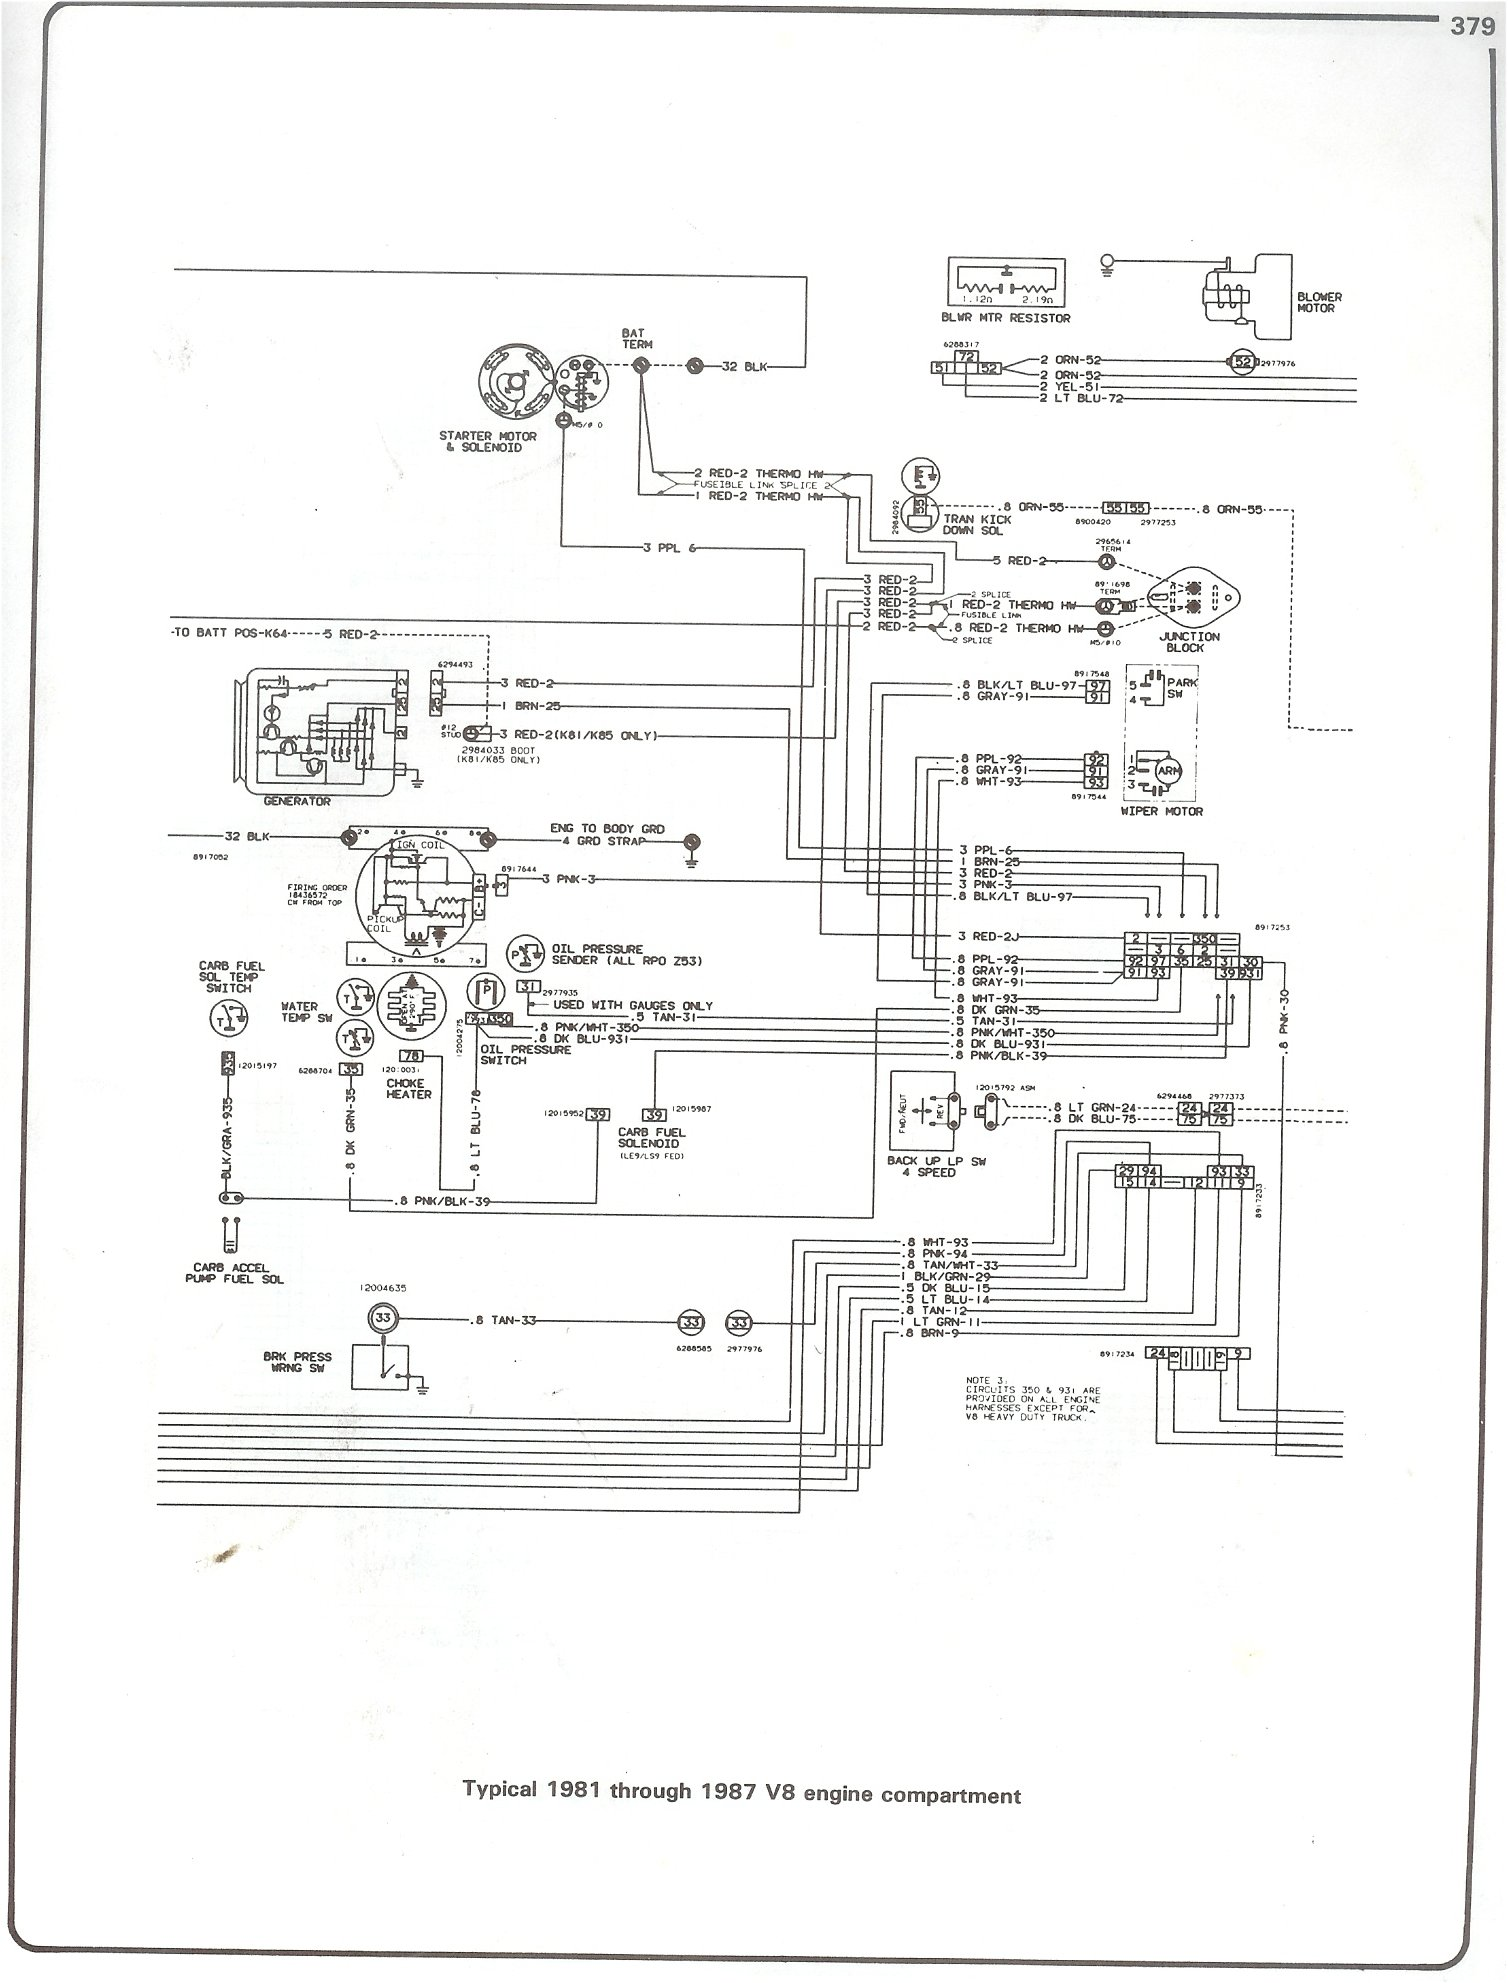 81 87_V8_engine complete 73 87 wiring diagrams wiring diagram for 1986 chevy p30 7.4l at soozxer.org